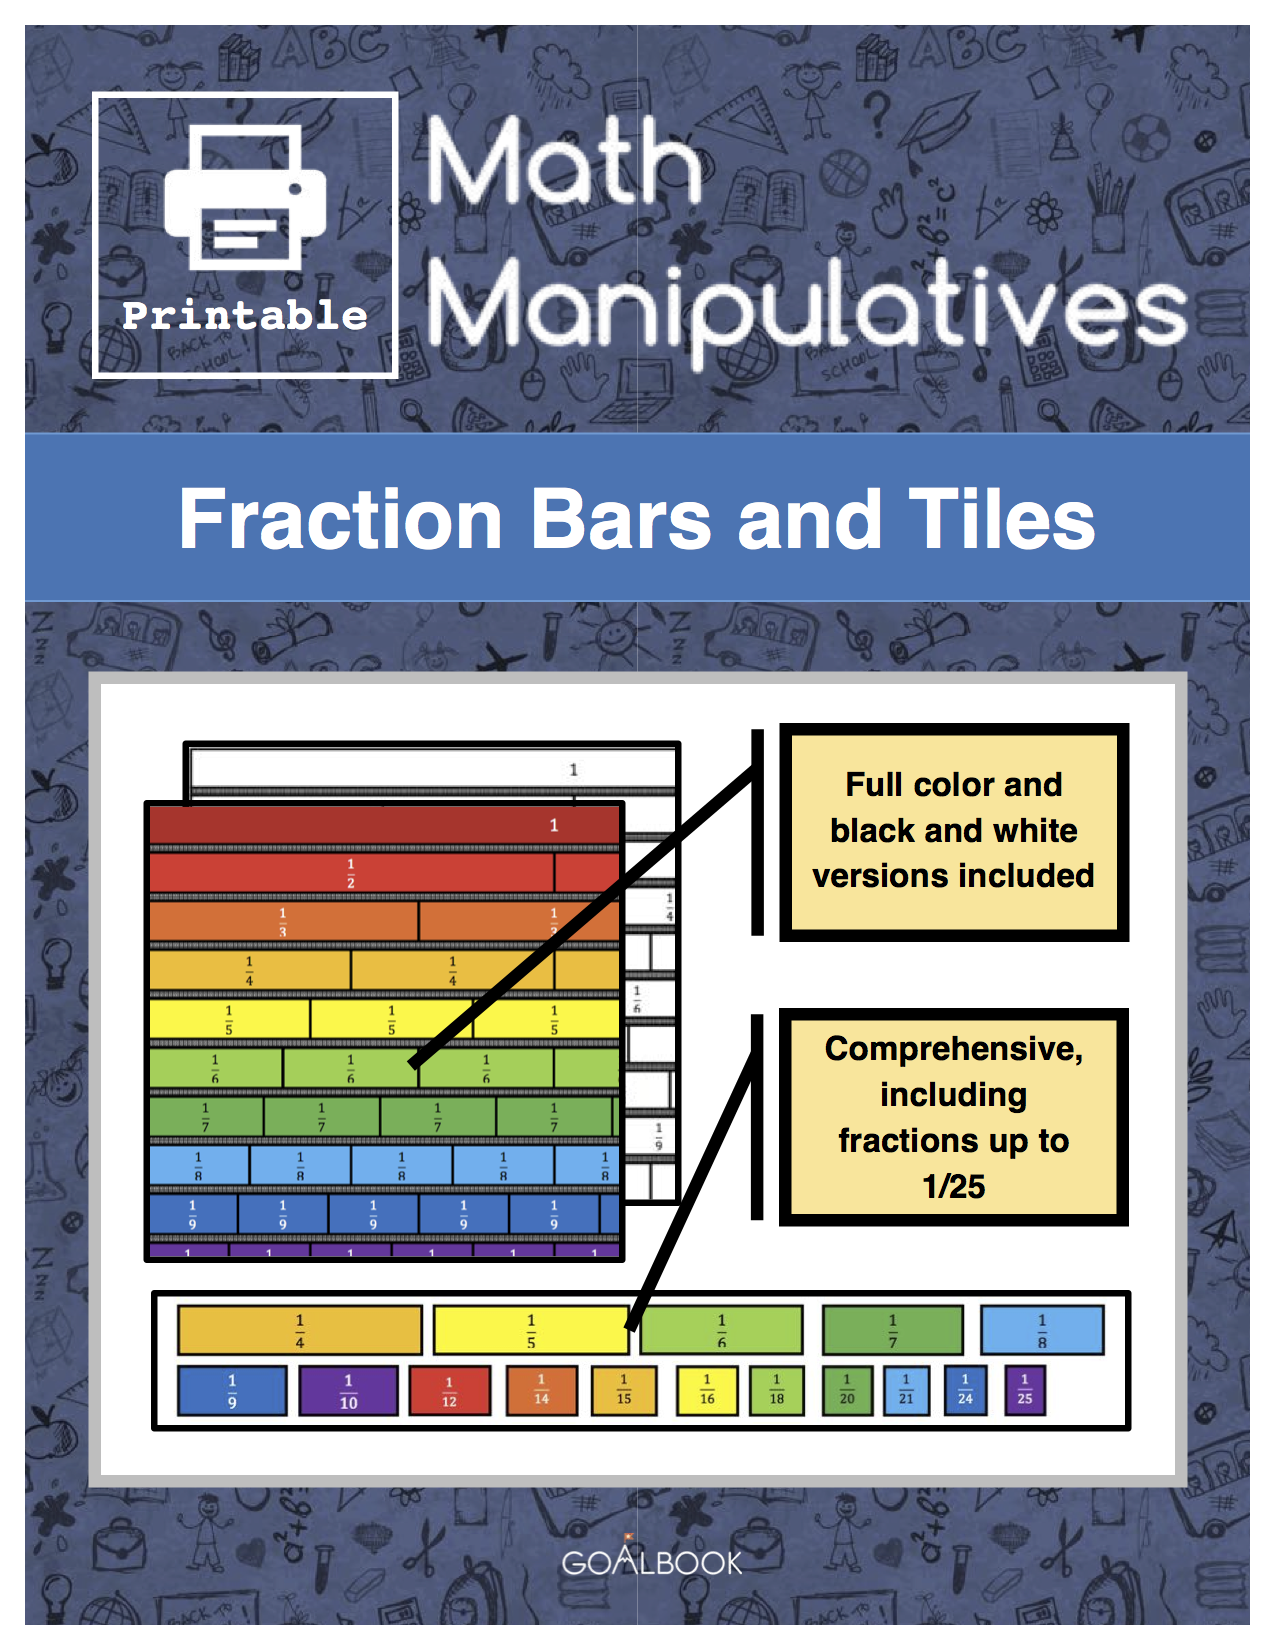 Fraction Tiles and Bars